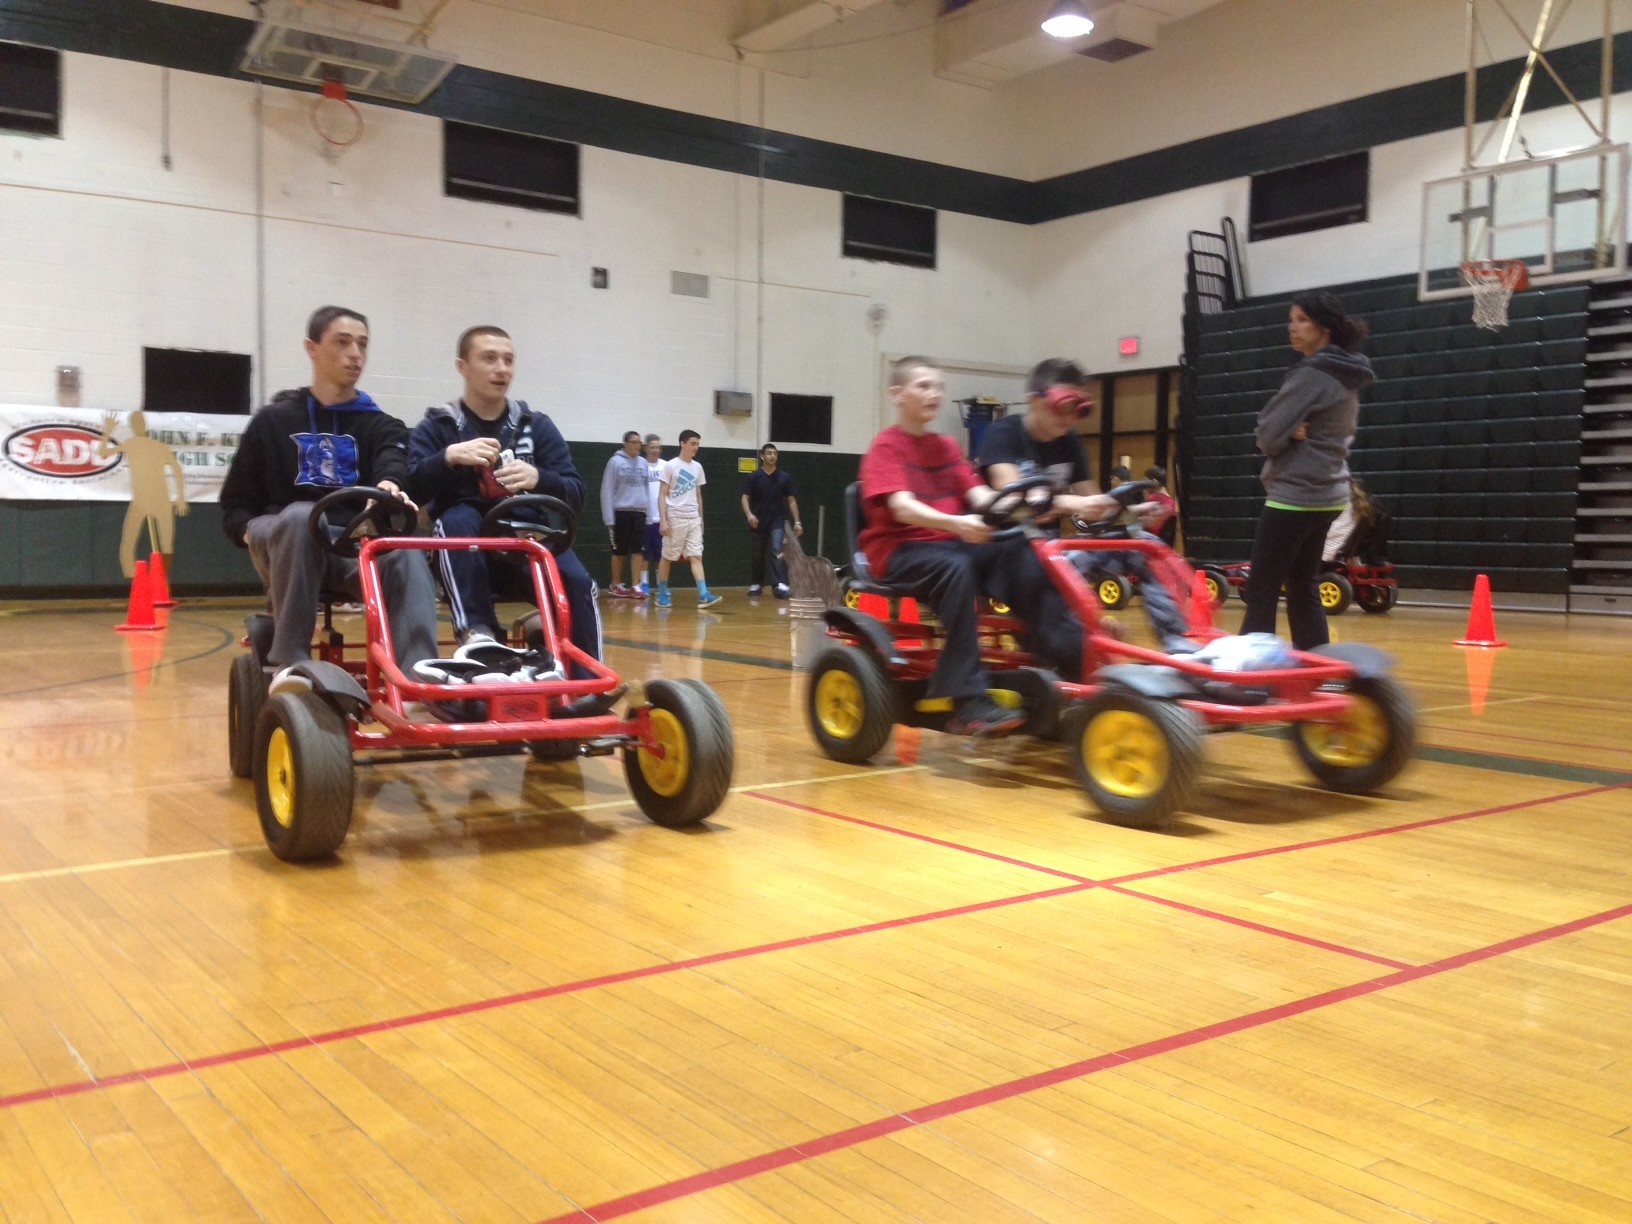 With special goggles that mimic the effects of DWI, Kennedy High School students rode pedal cars around their gymnasium last week during a SADD club DWI and distracted driving awareness event.